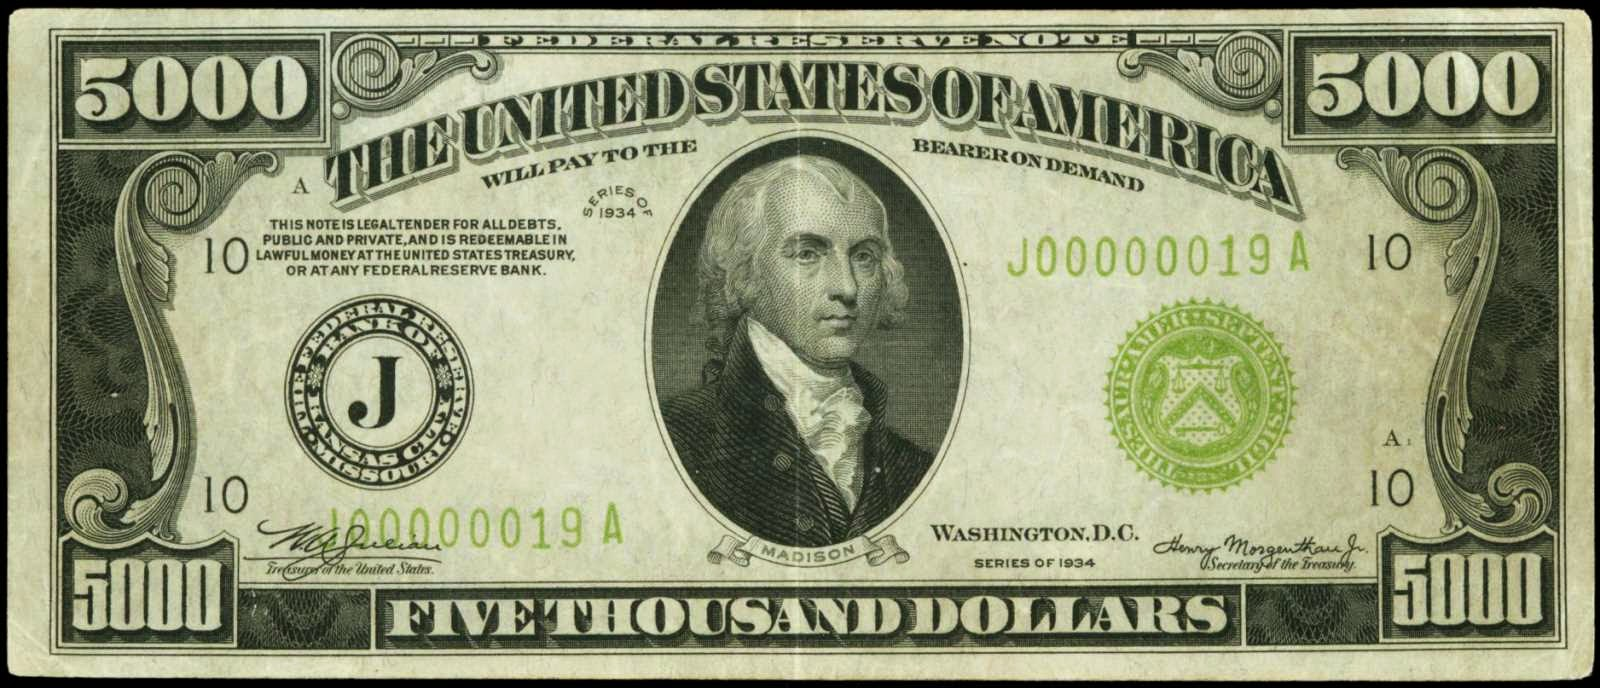 United States currency 5000 Five Thousand Dollar Federal Reserve Notes